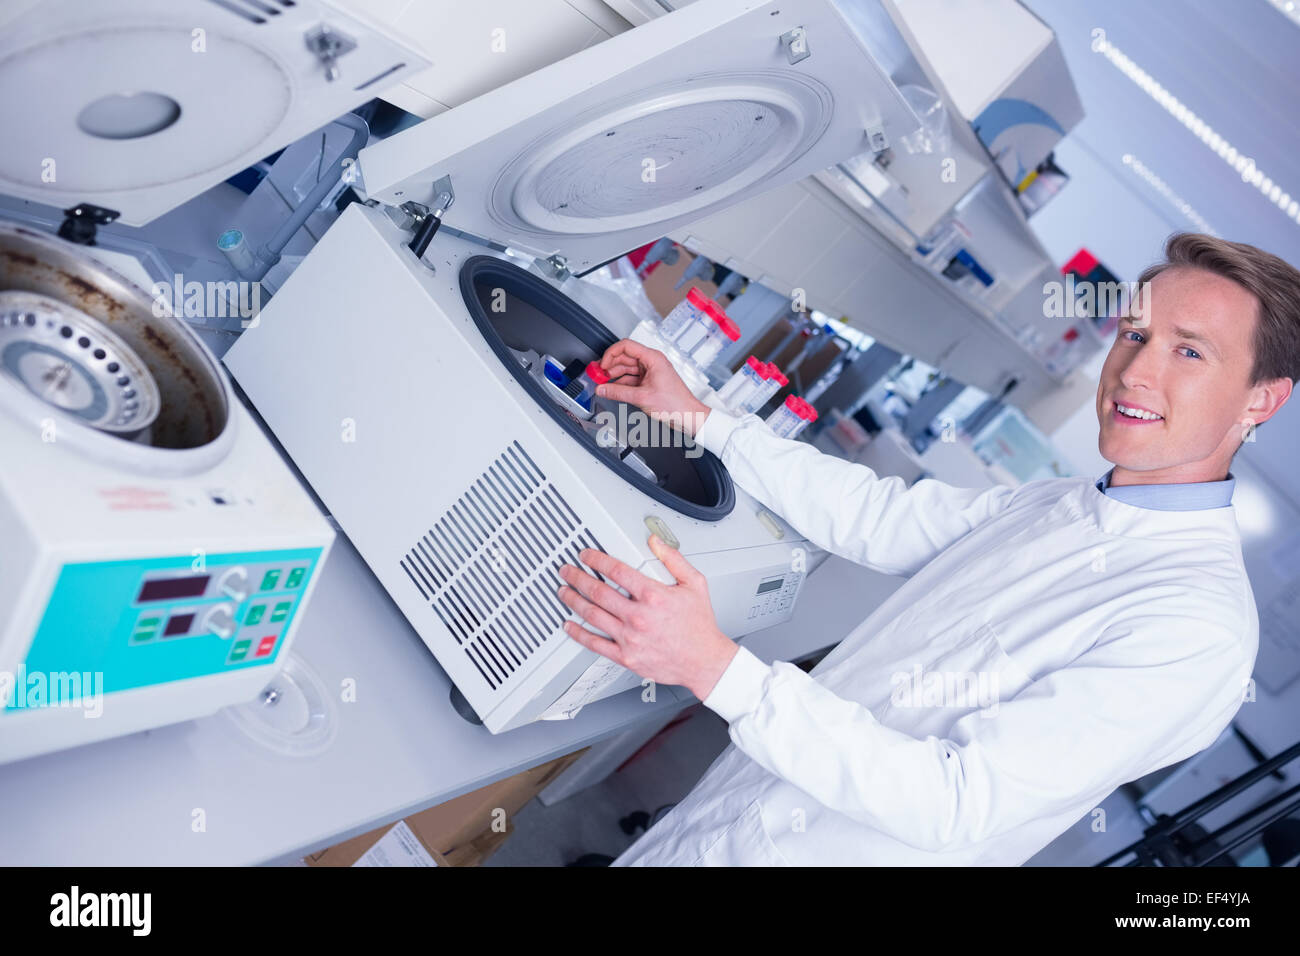 Smiling chemist using a centrifuge looking at camera - Stock Image